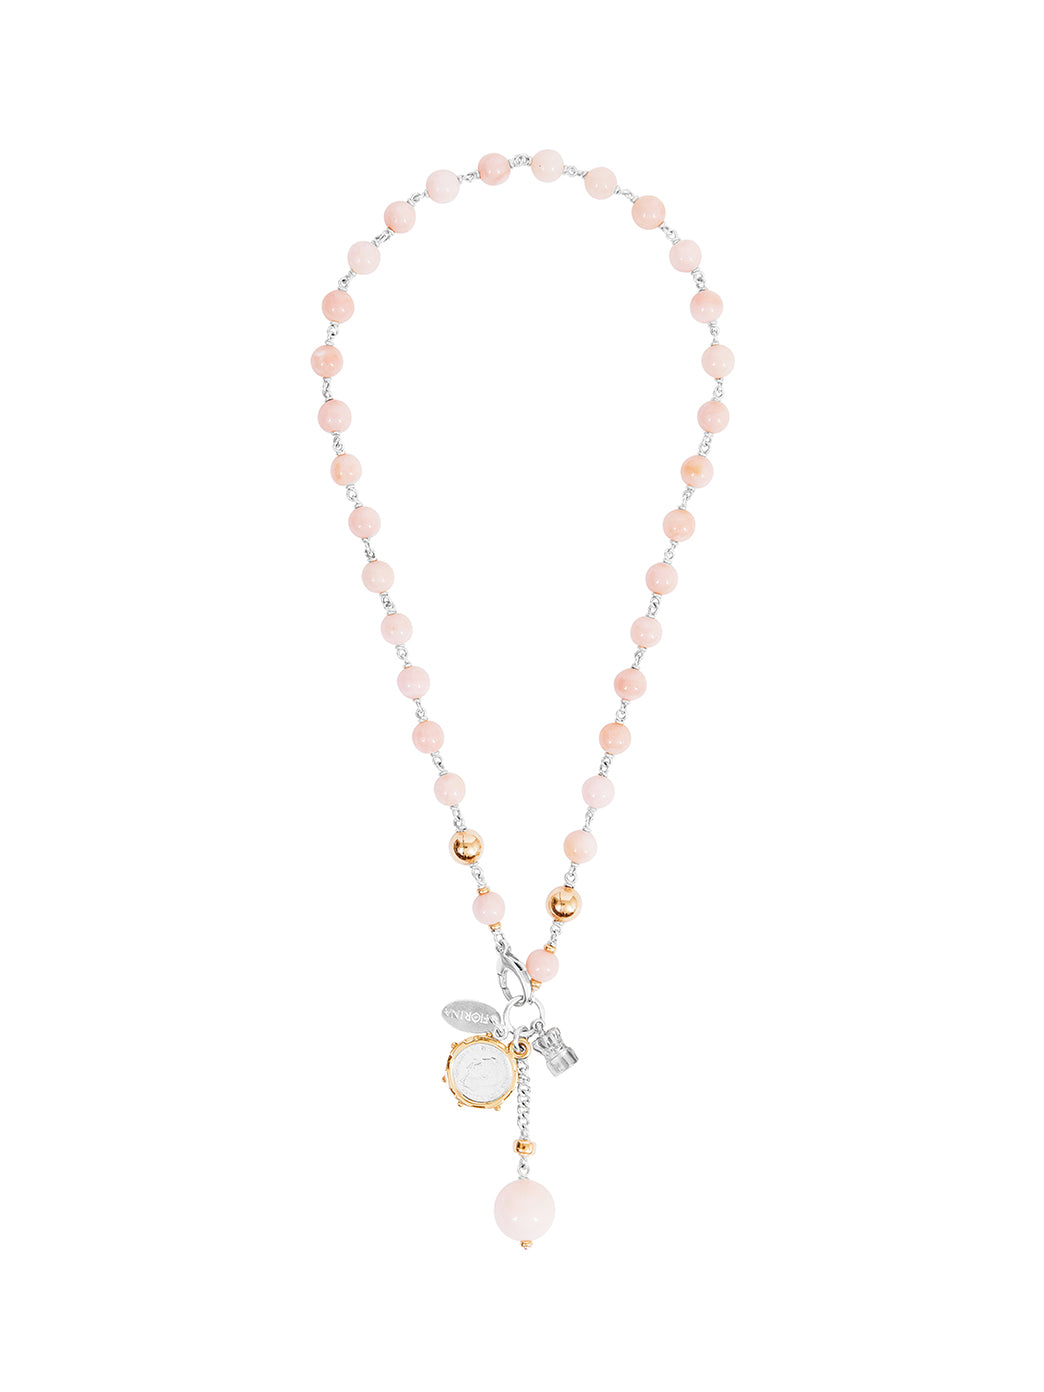 Fiorina Jewellery Pearlina Necklace Pink Opal